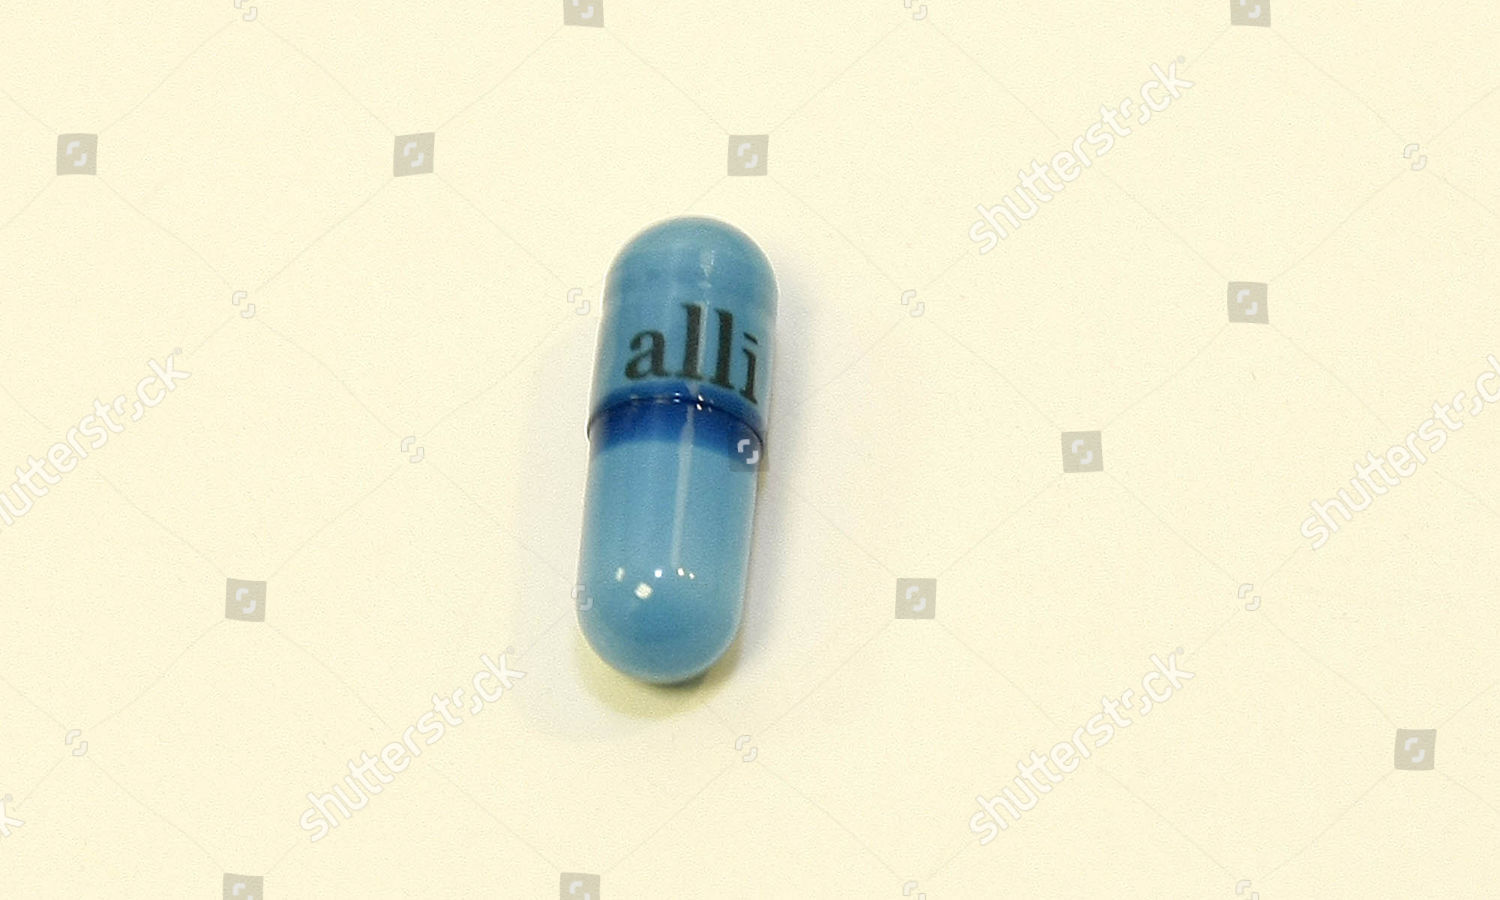 Alli Diet Pills Editorial Stock Photo Stock Image Shutterstock